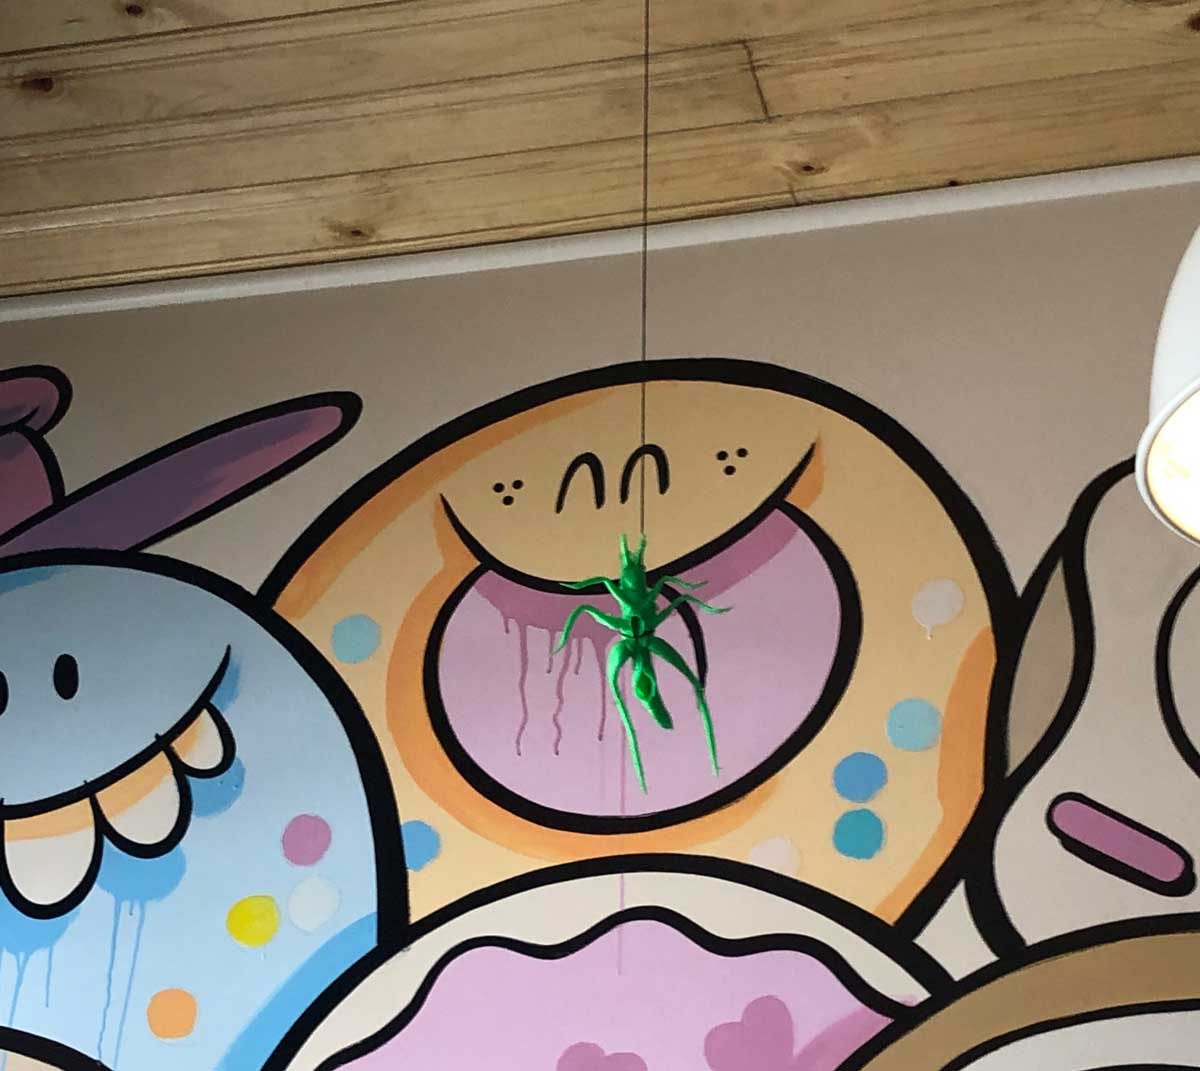 A small toy grasshopper hanging from the ceiling in front of  a colorful mural